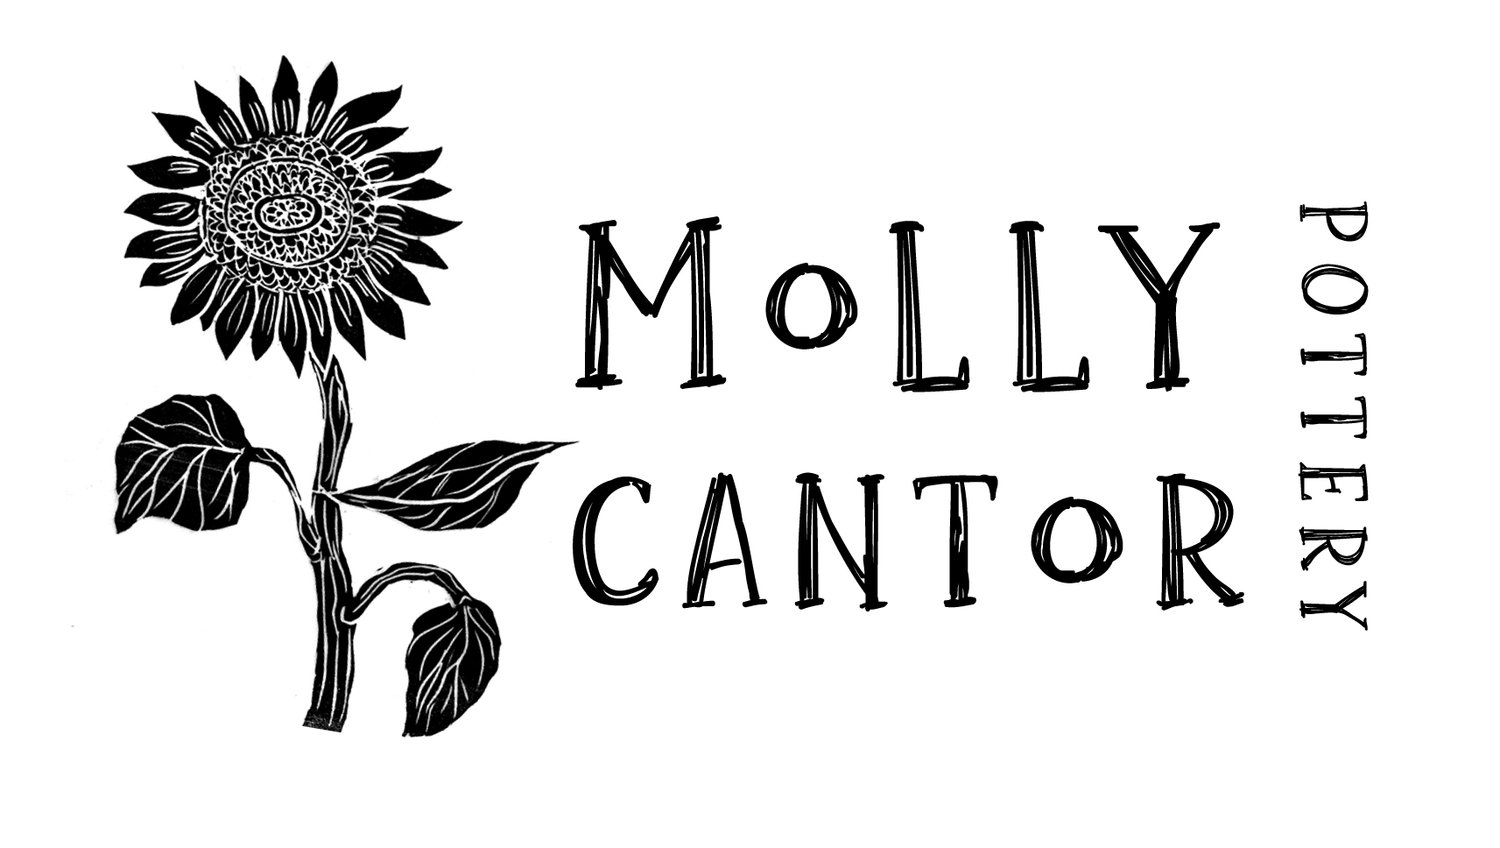 MOLLY CANTOR